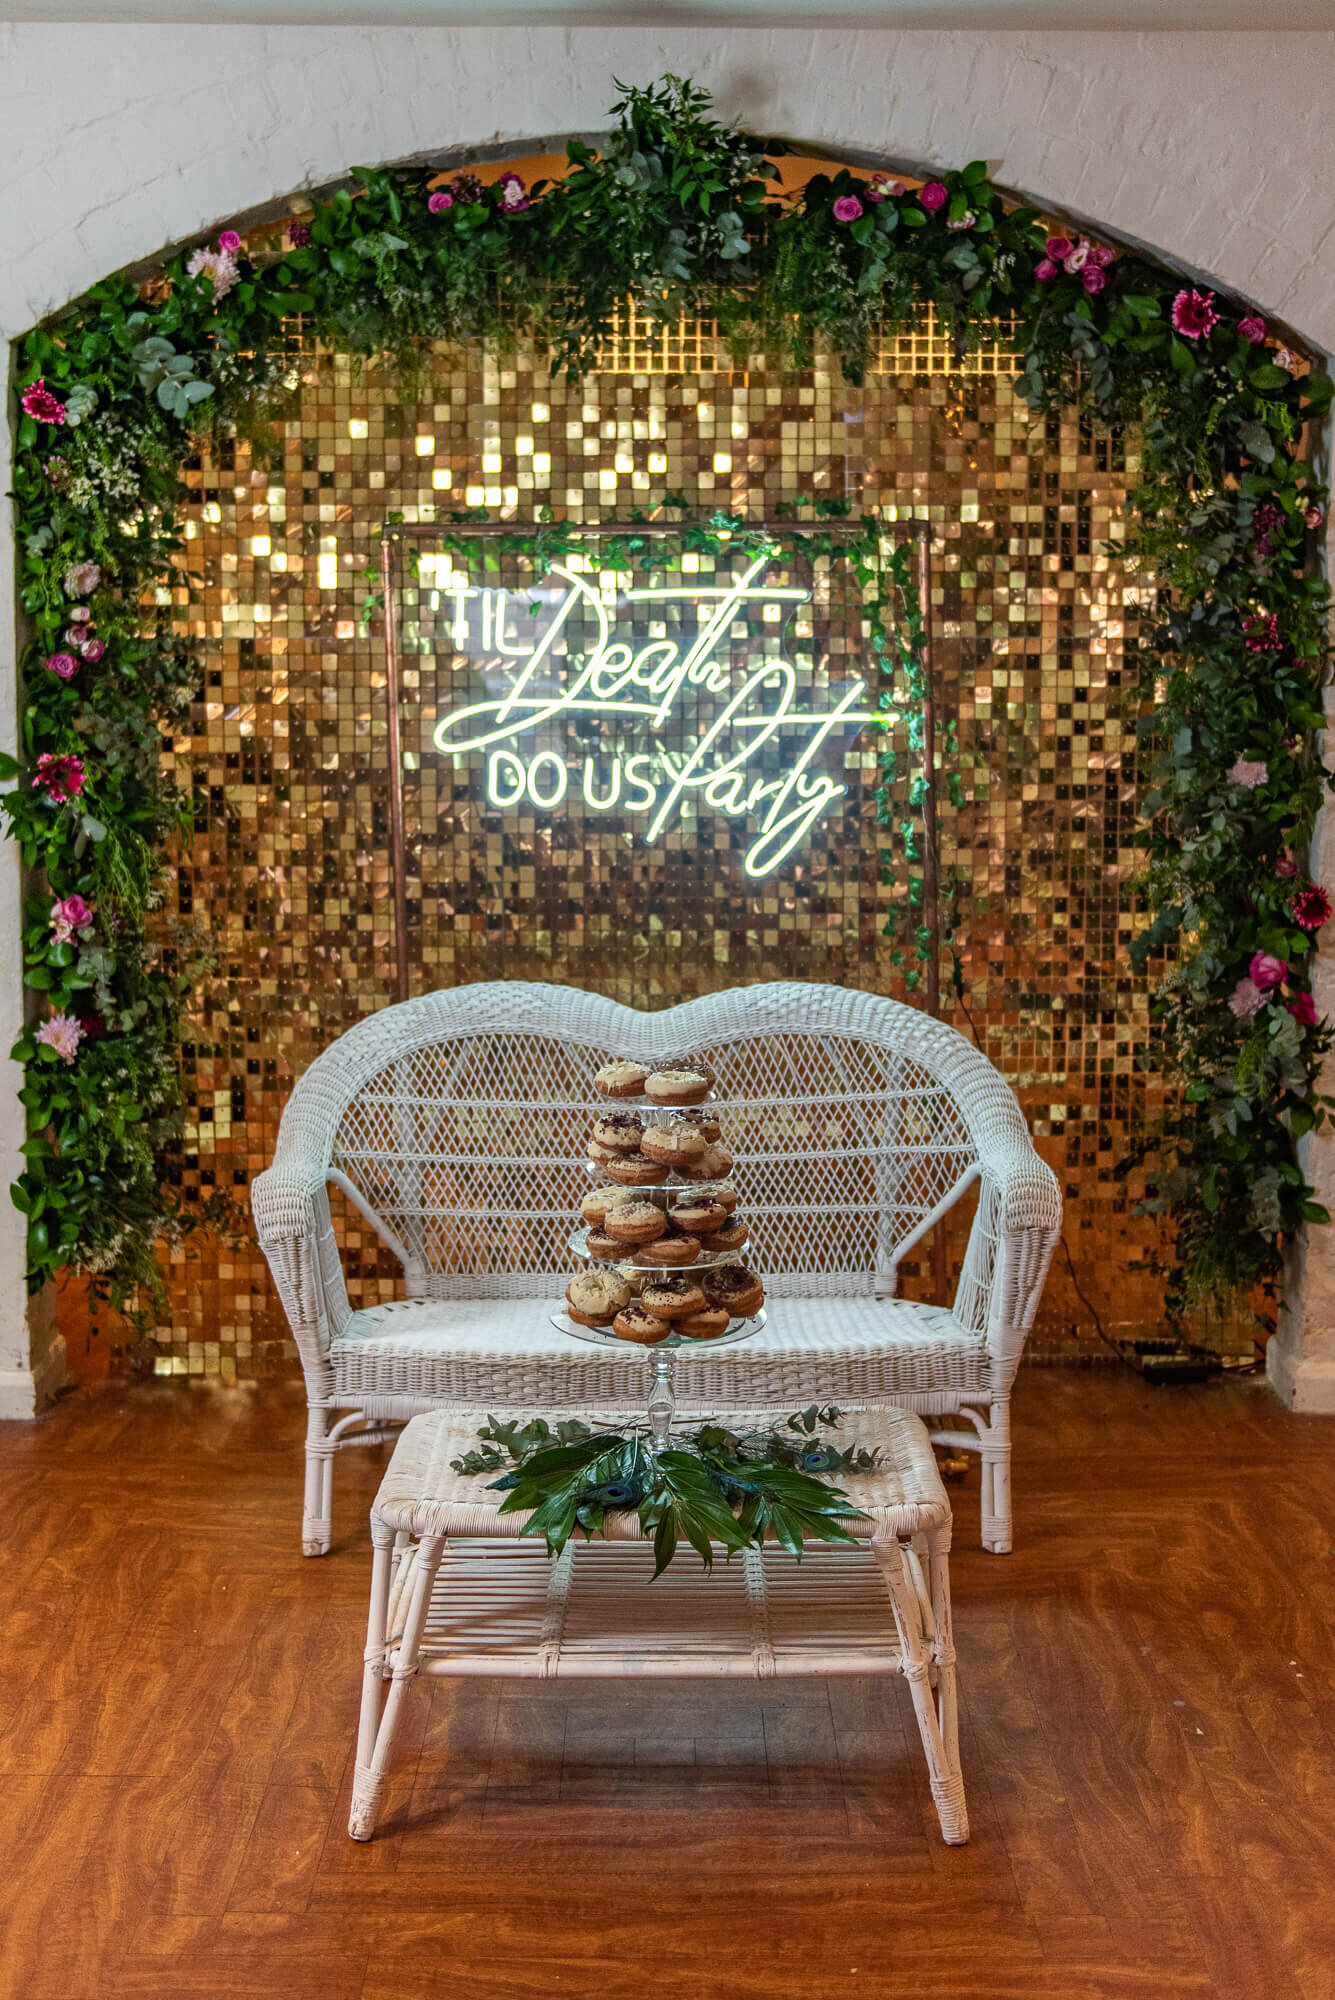 Til death do us party neon wedding sign with donut tower cake